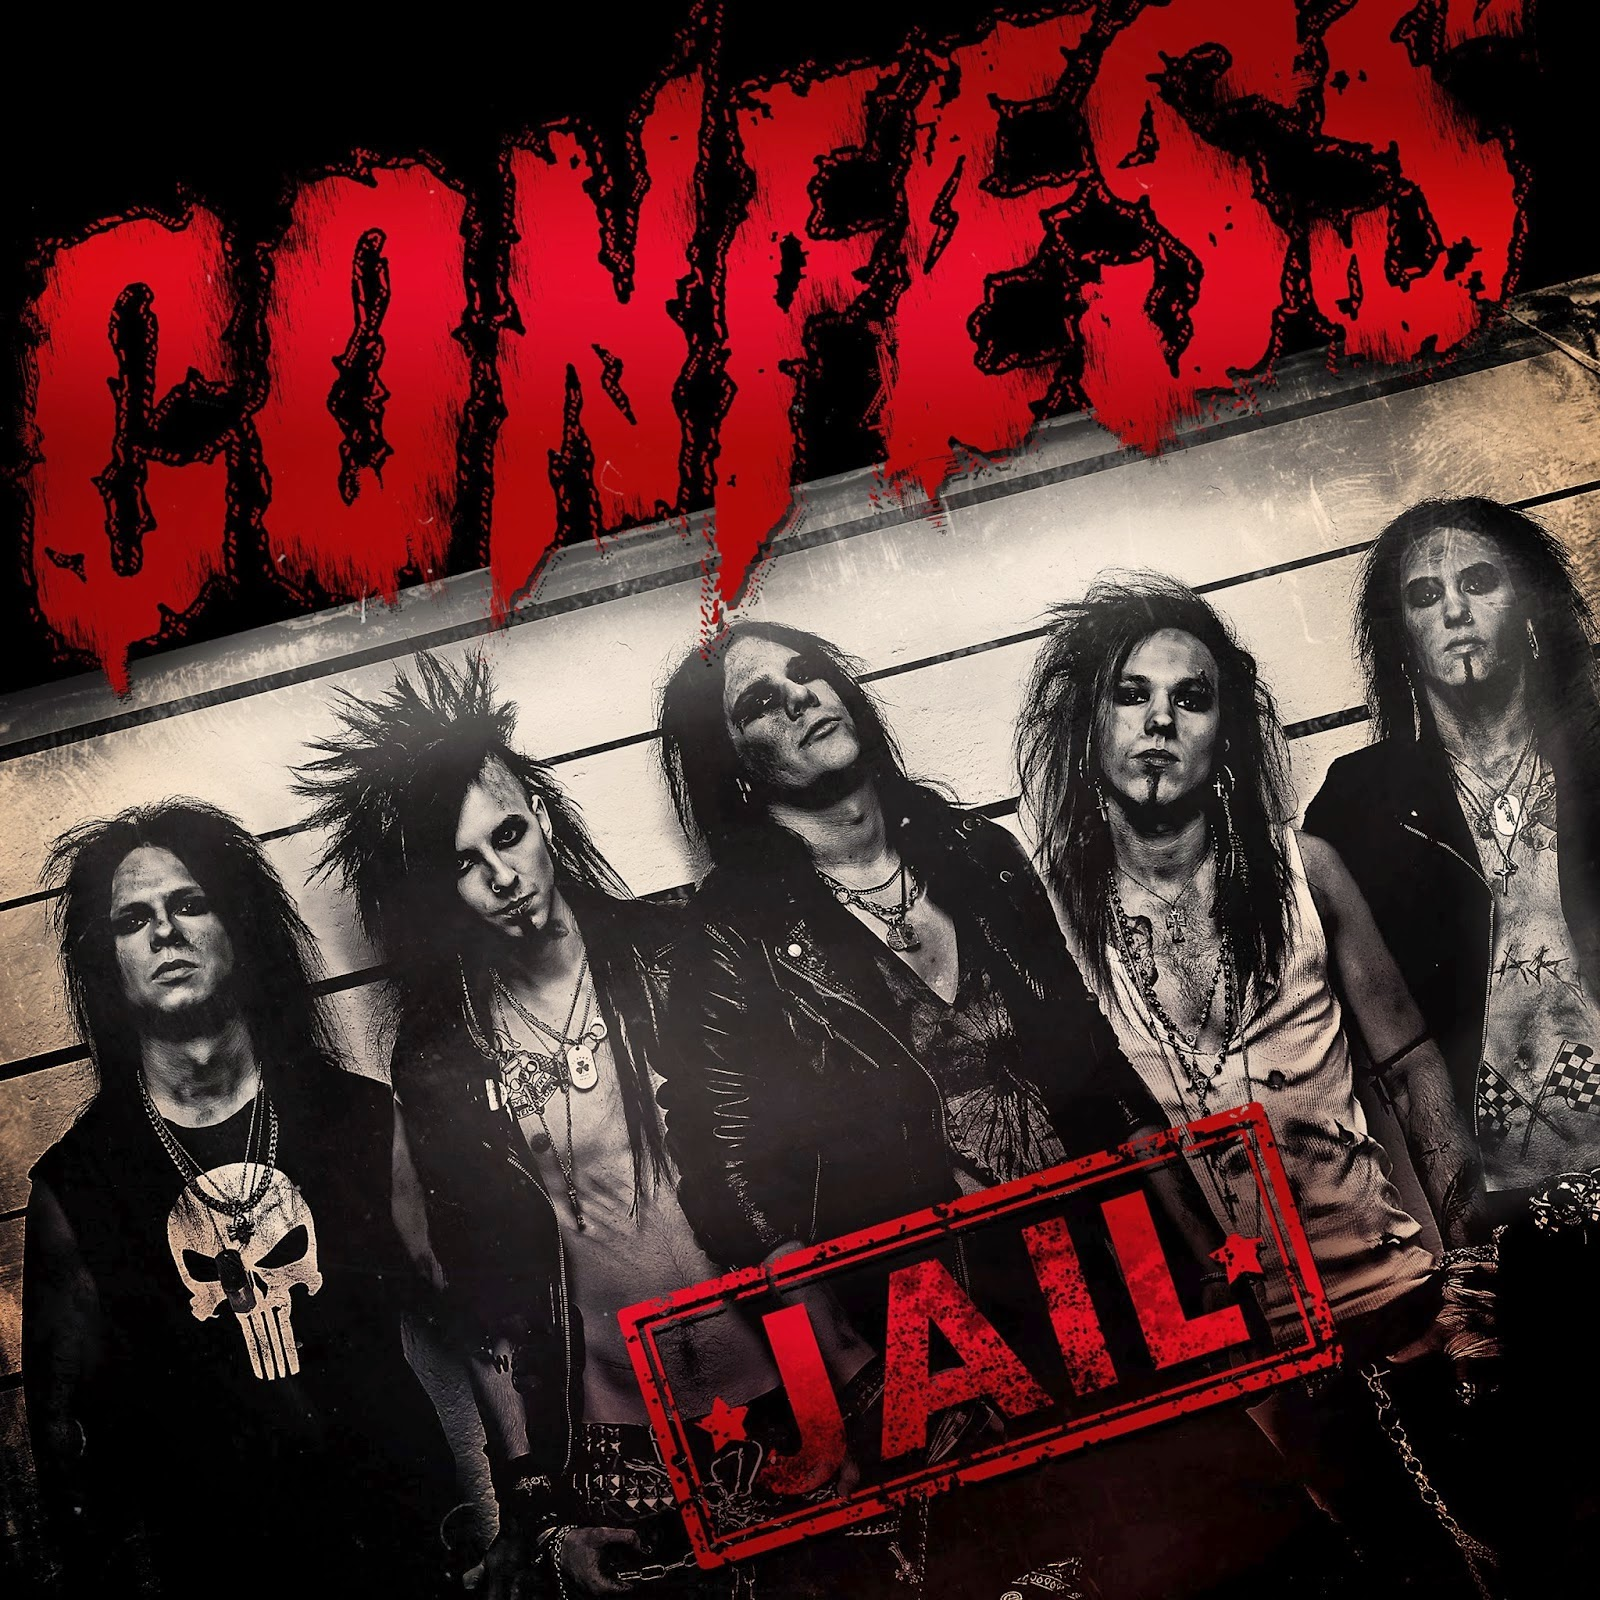 http://rock-and-metal-4-you.blogspot.de/2014/04/cd-review-confess-jail.html